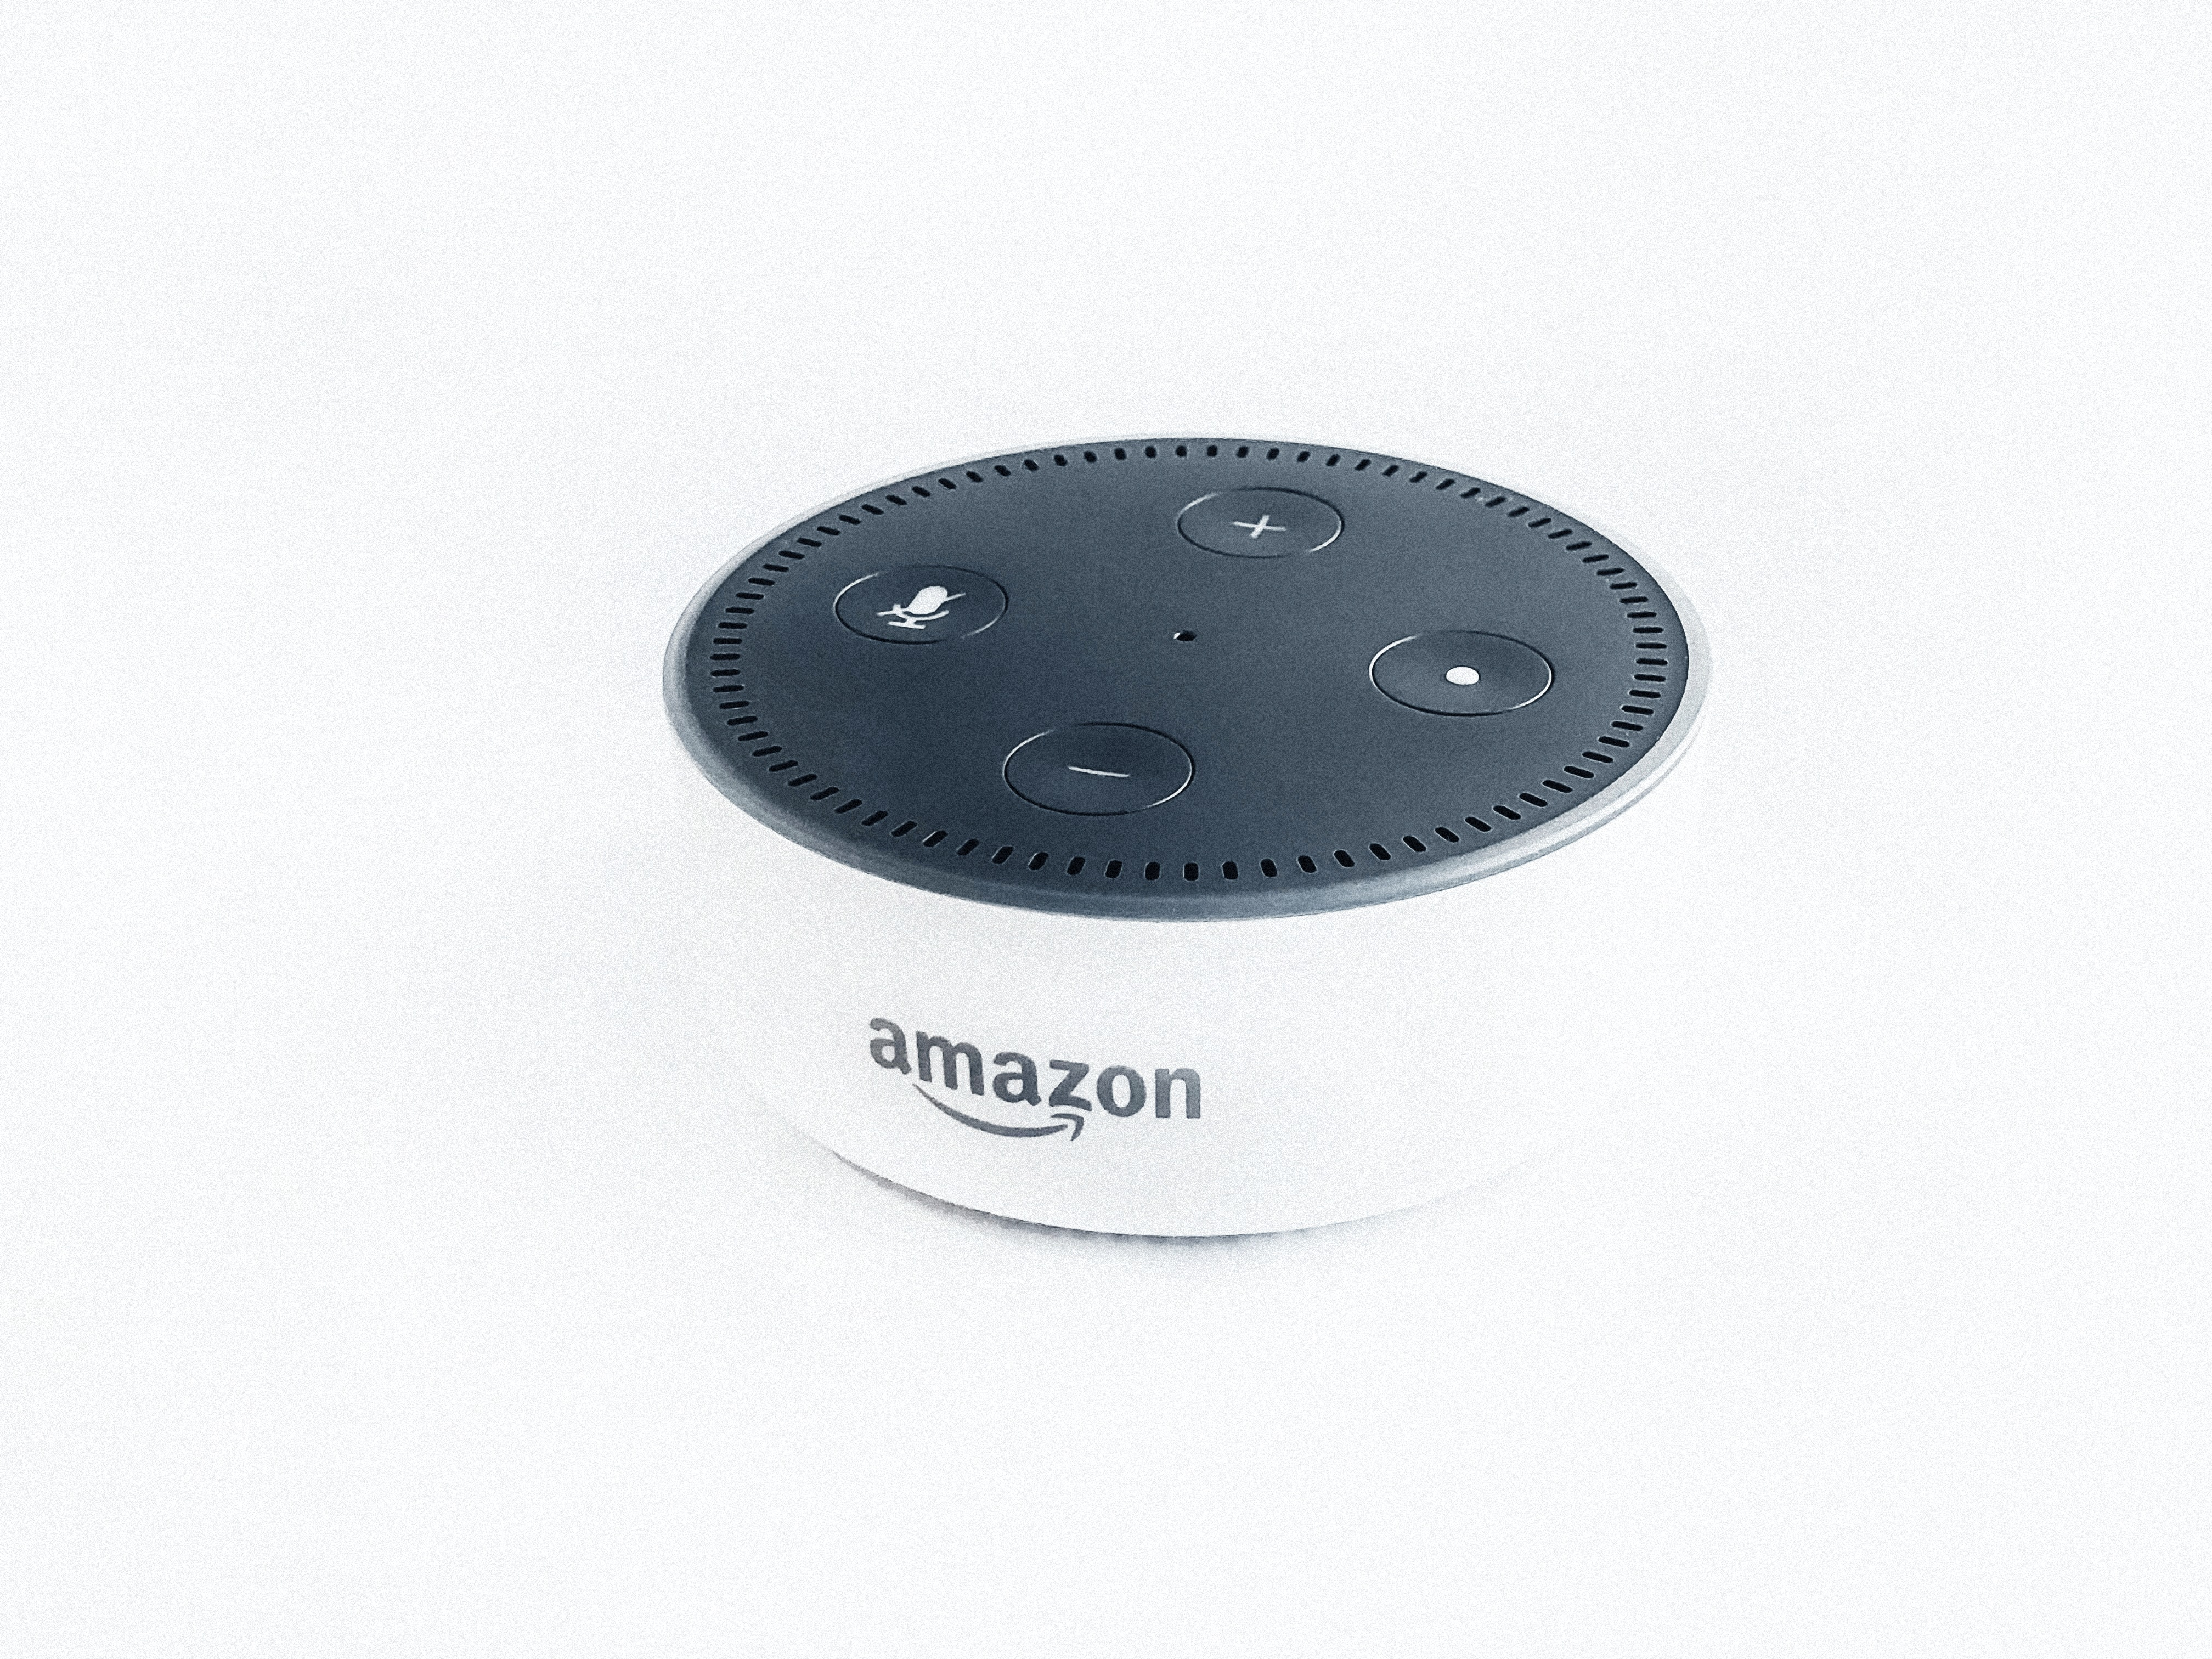 white and black Amazon Echo dot